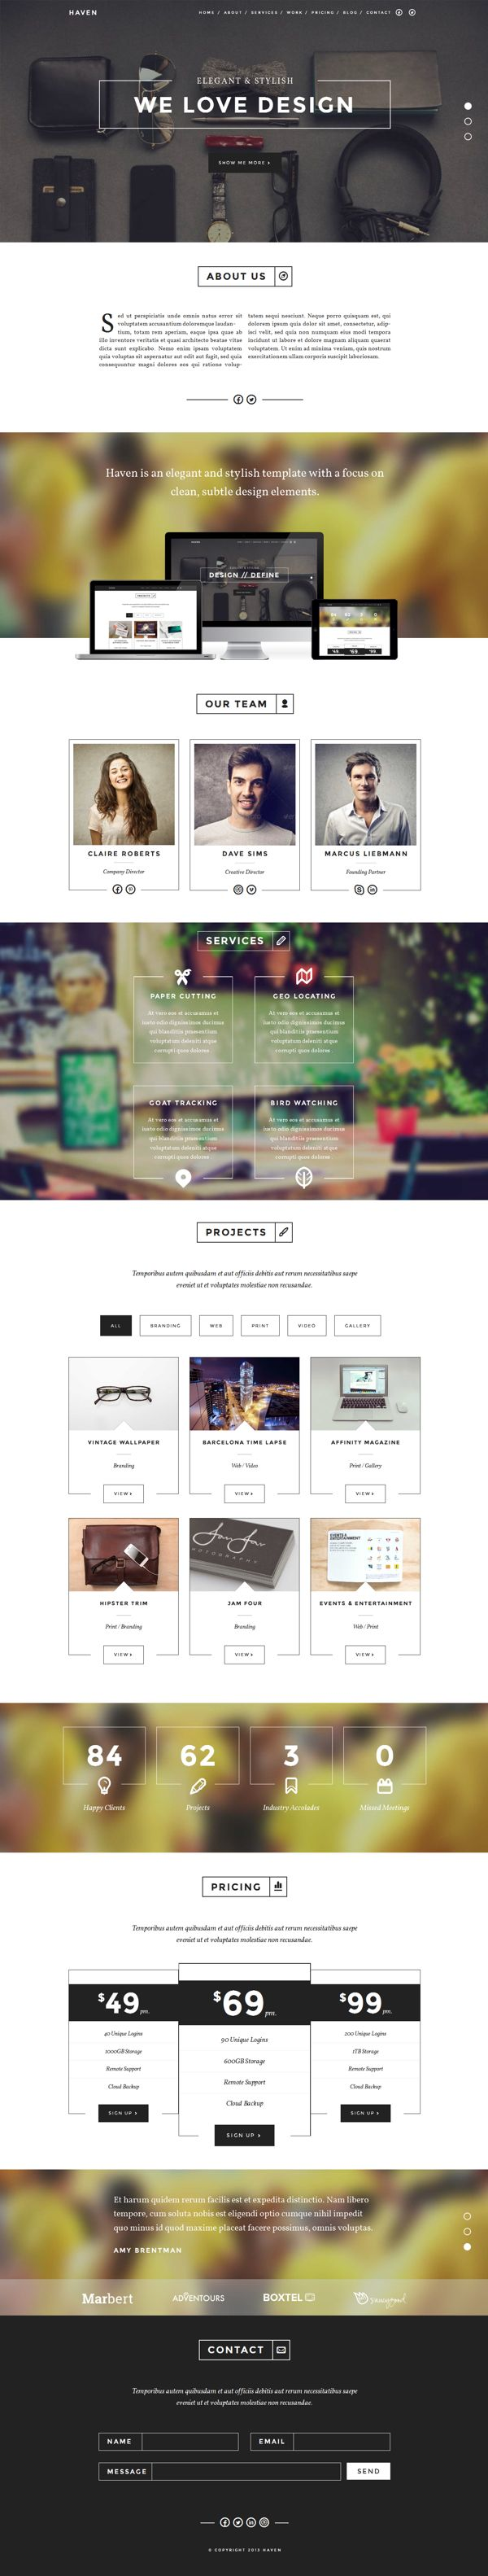 Haven - Elegant OnePage Template by WordPress Design Awards , via Behance